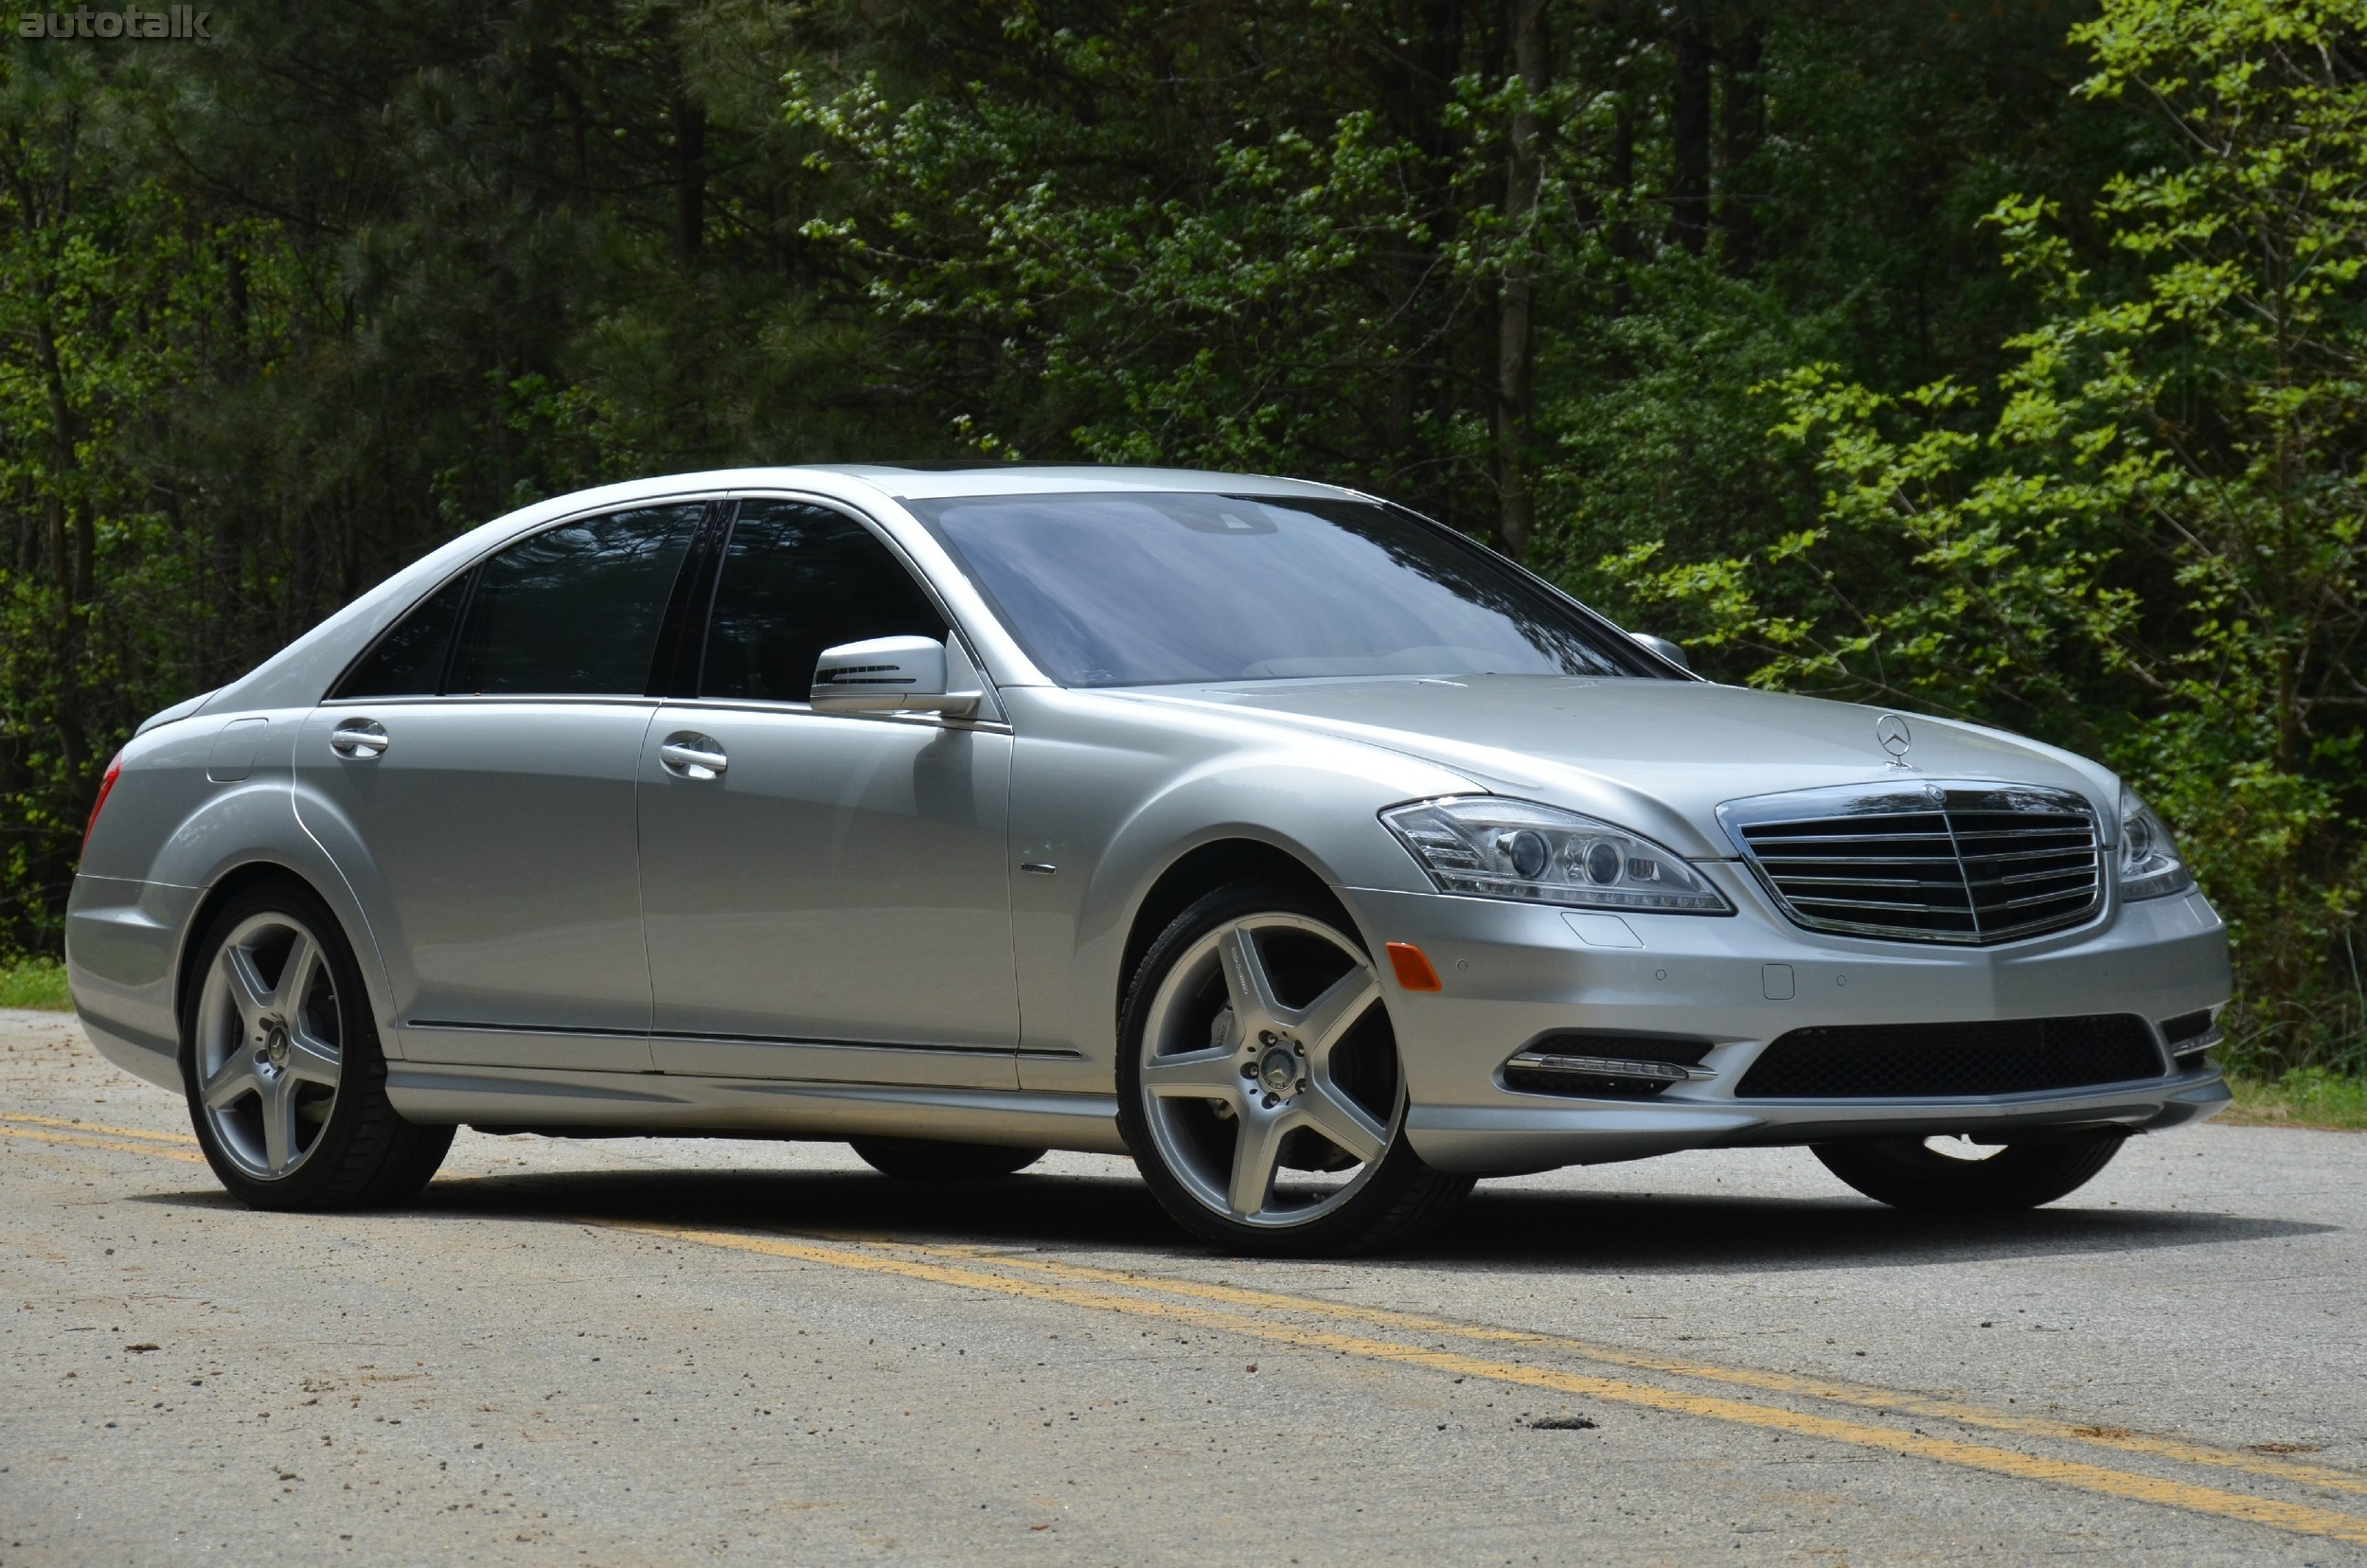 2012 mercedes benz s550 review autotalk for Mercedes benz b class review